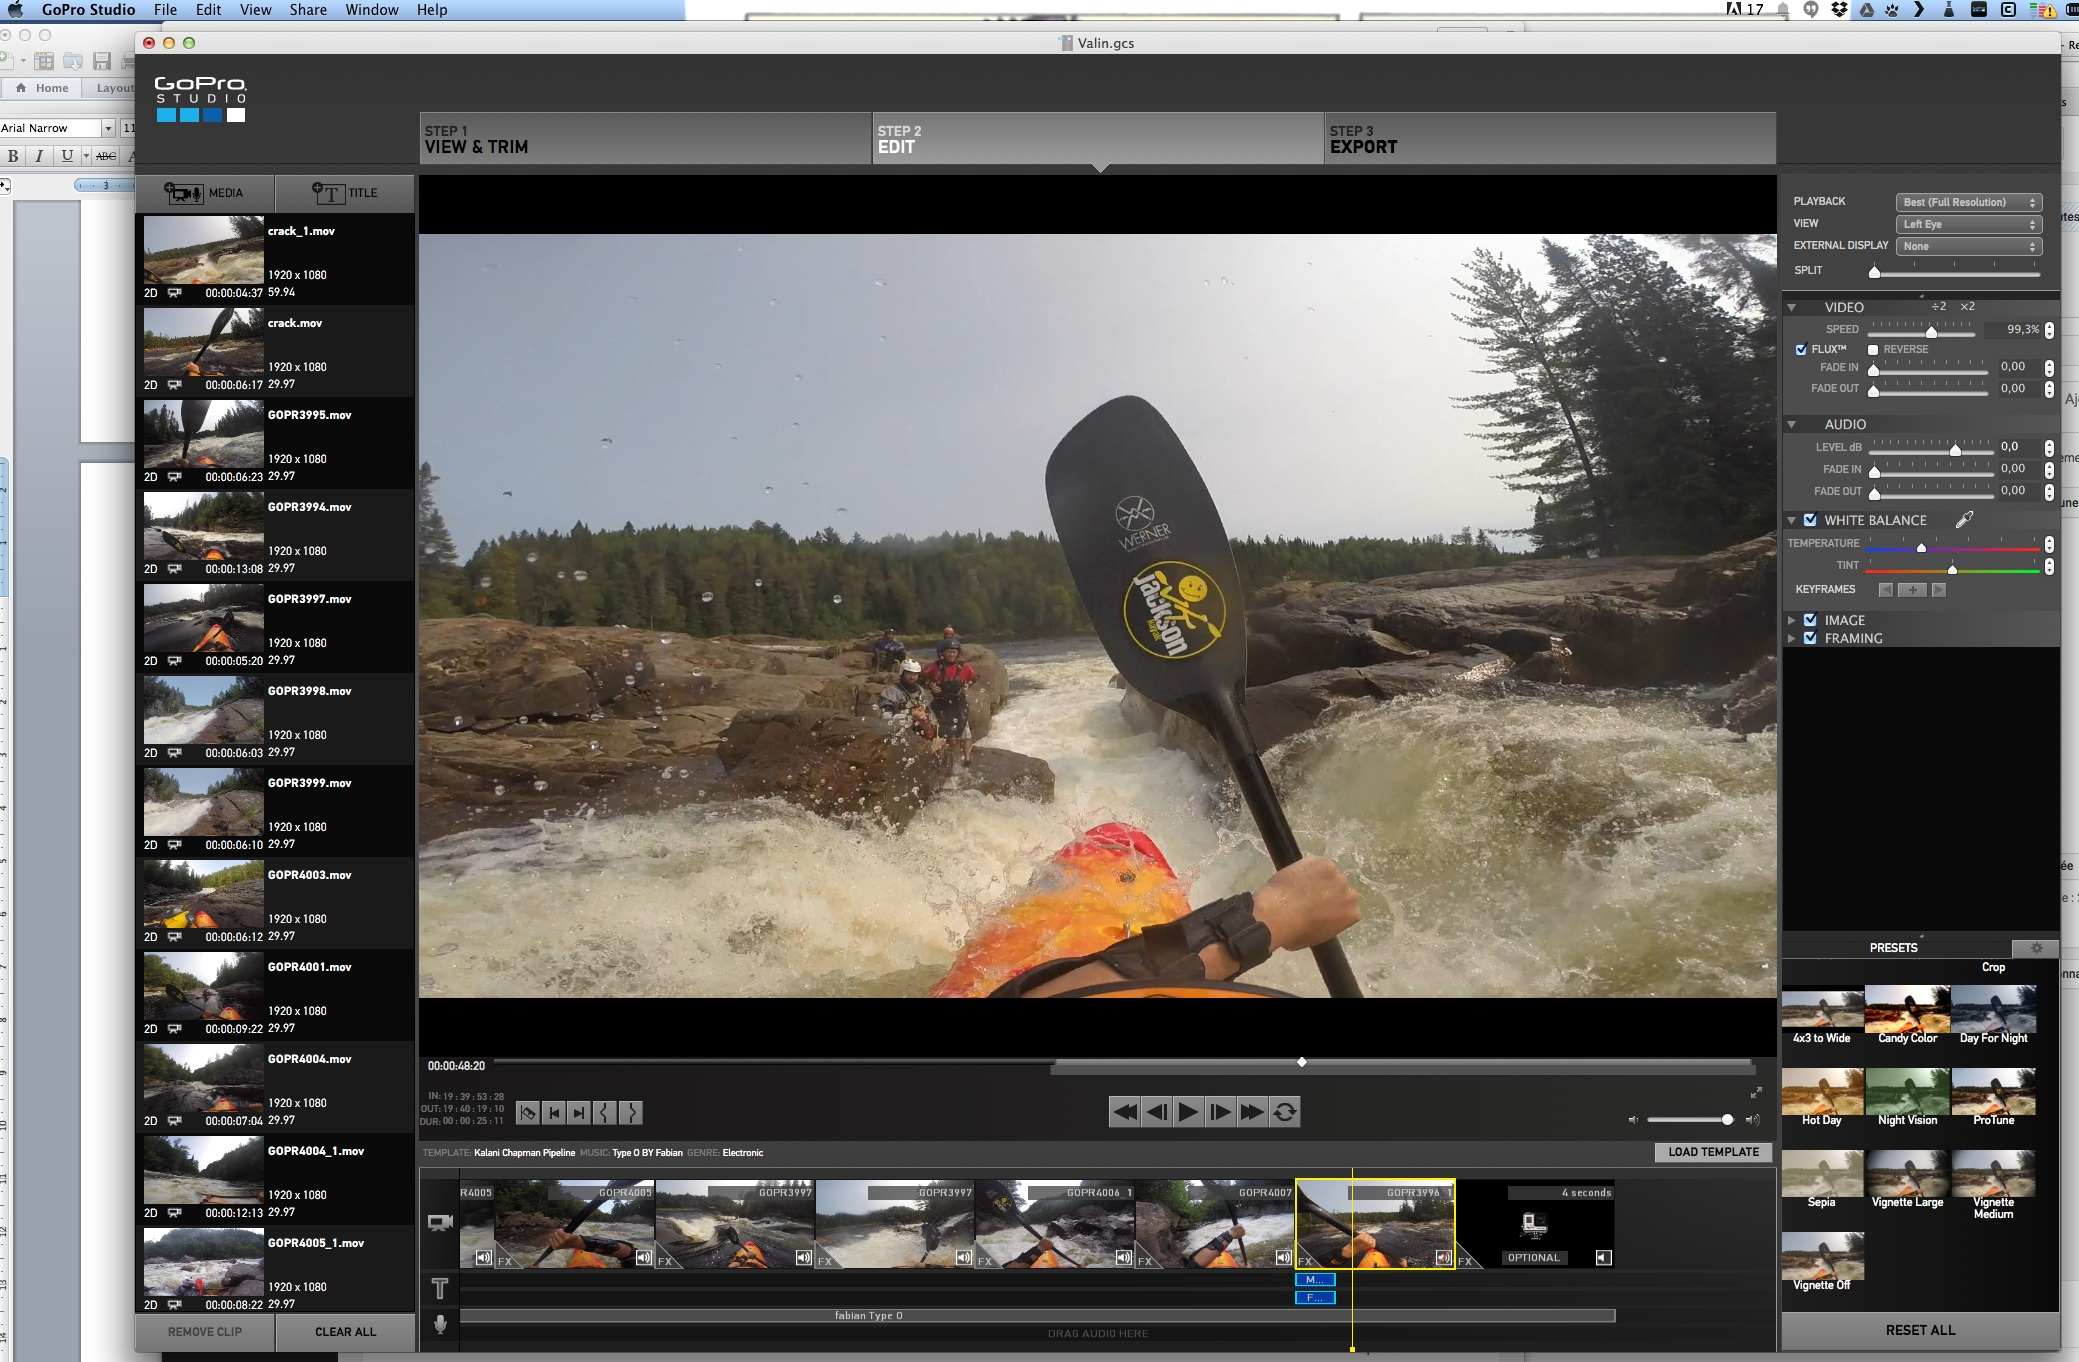 GoPro Studio to make a quick paddling video |